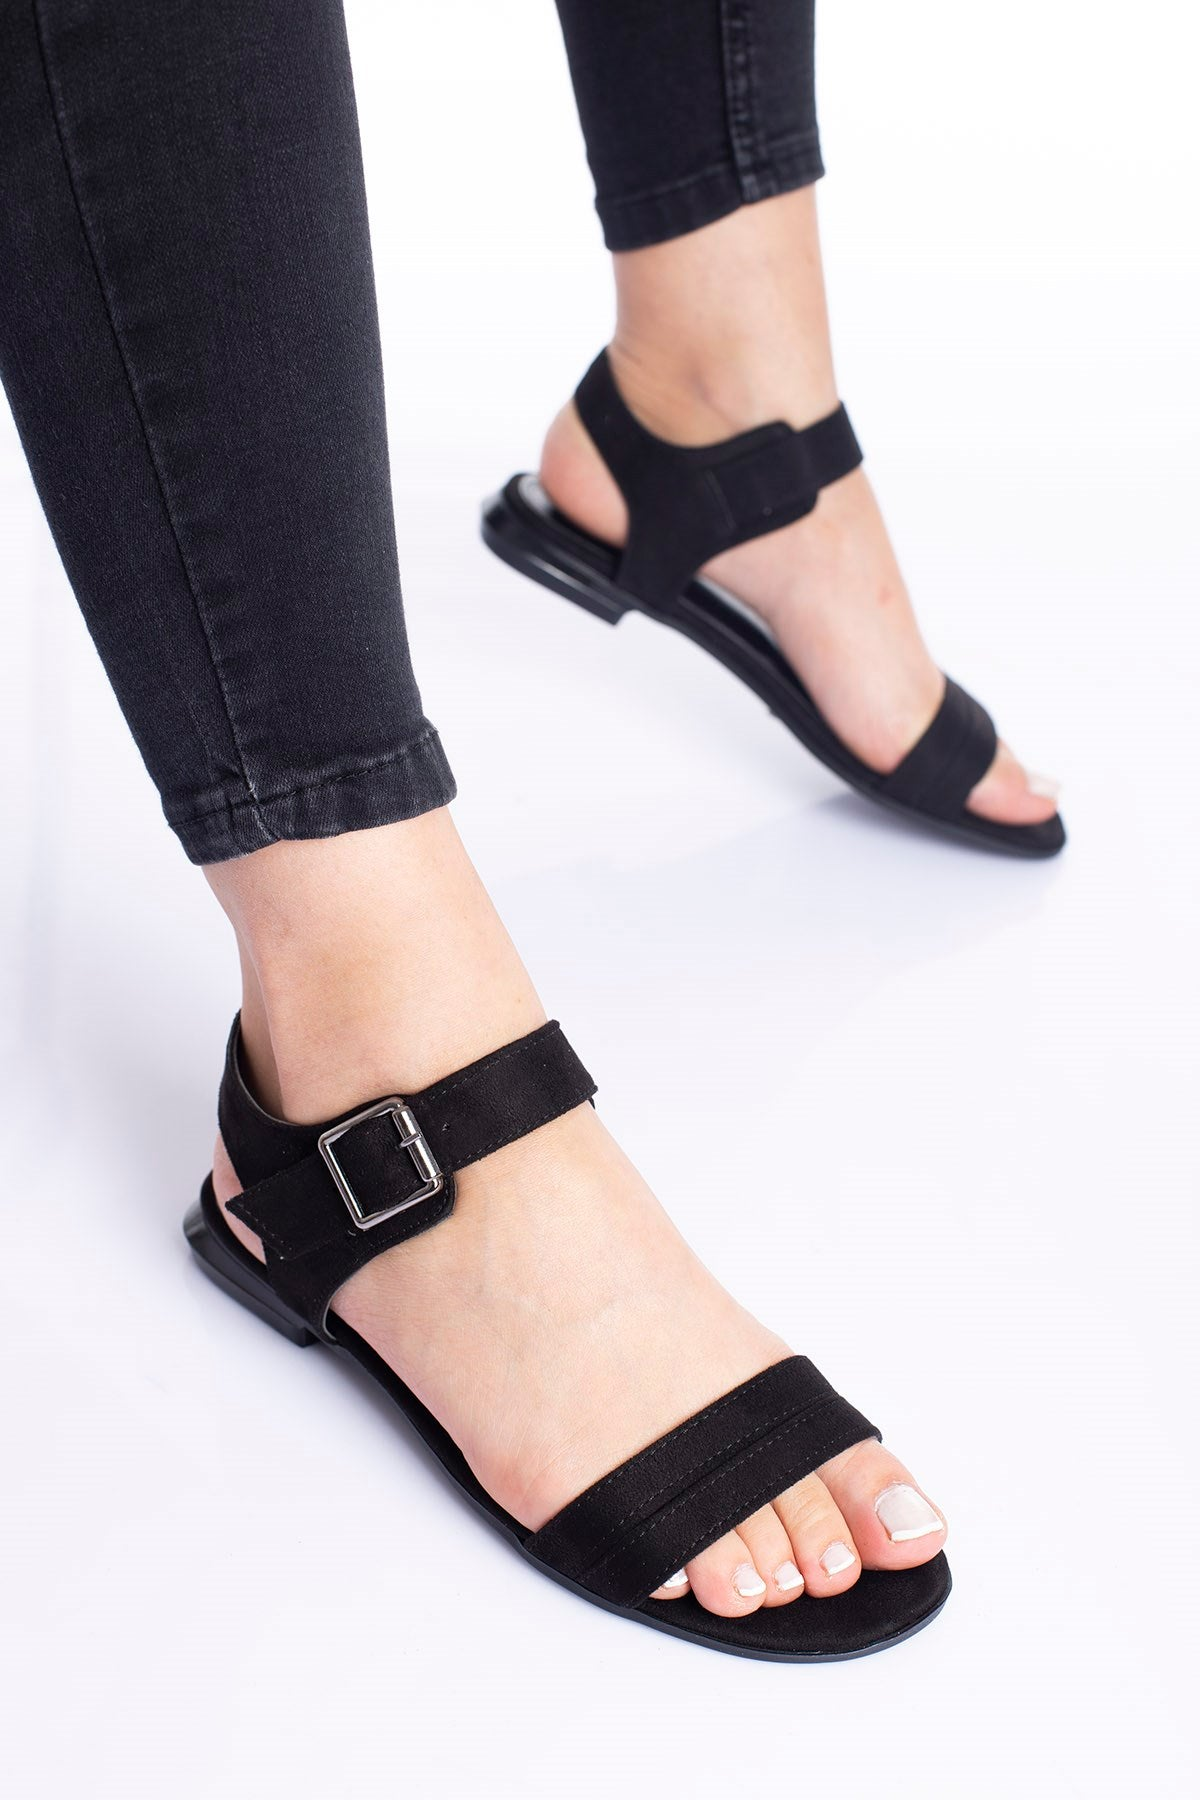 Women's Black Suede Flat Sandals